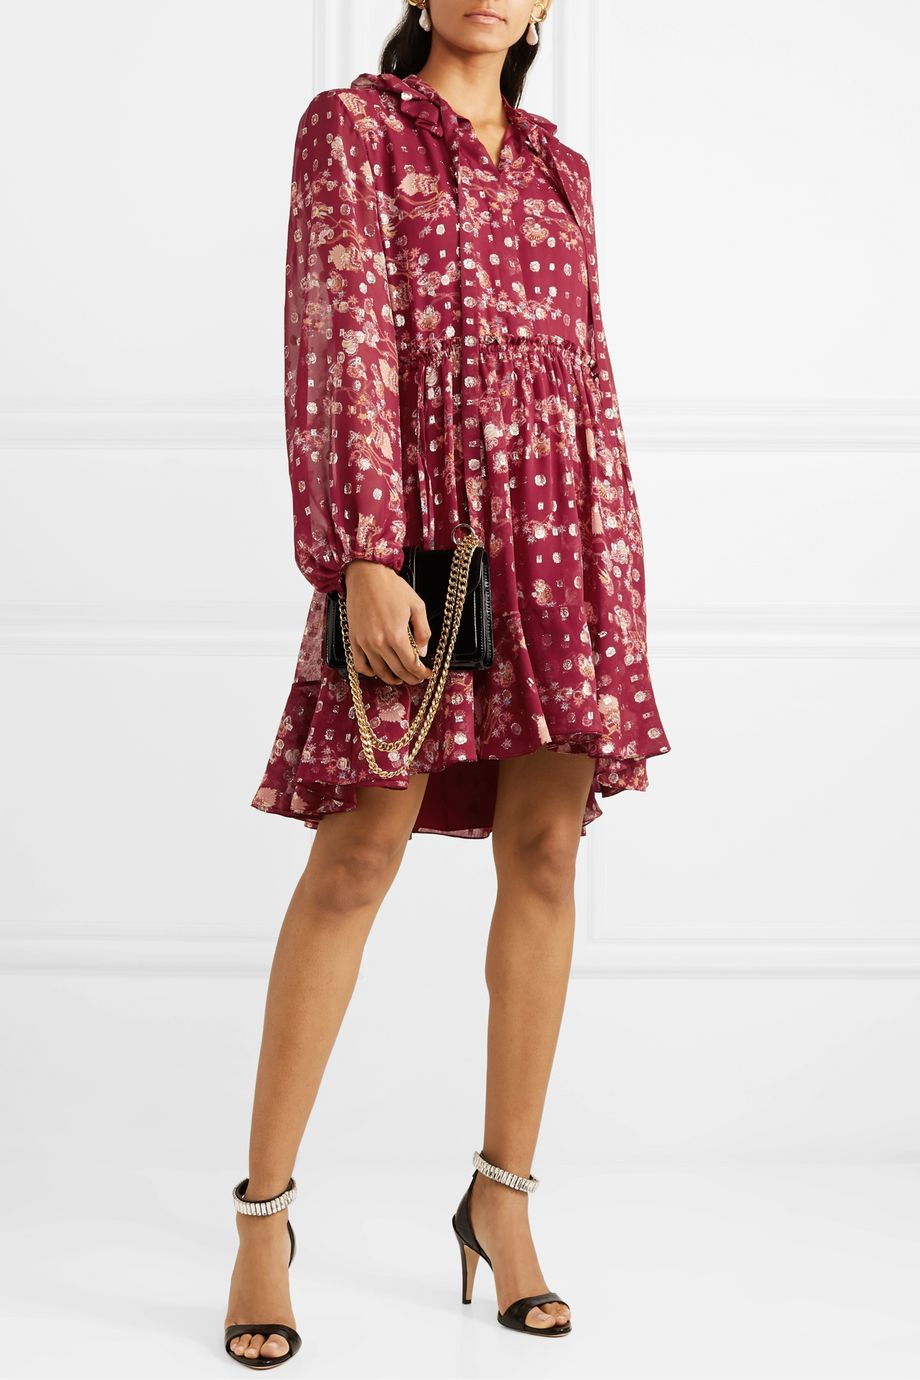 Chloé Tie-neck ruffled floral-print fil coupé silk-chiffon mini dress